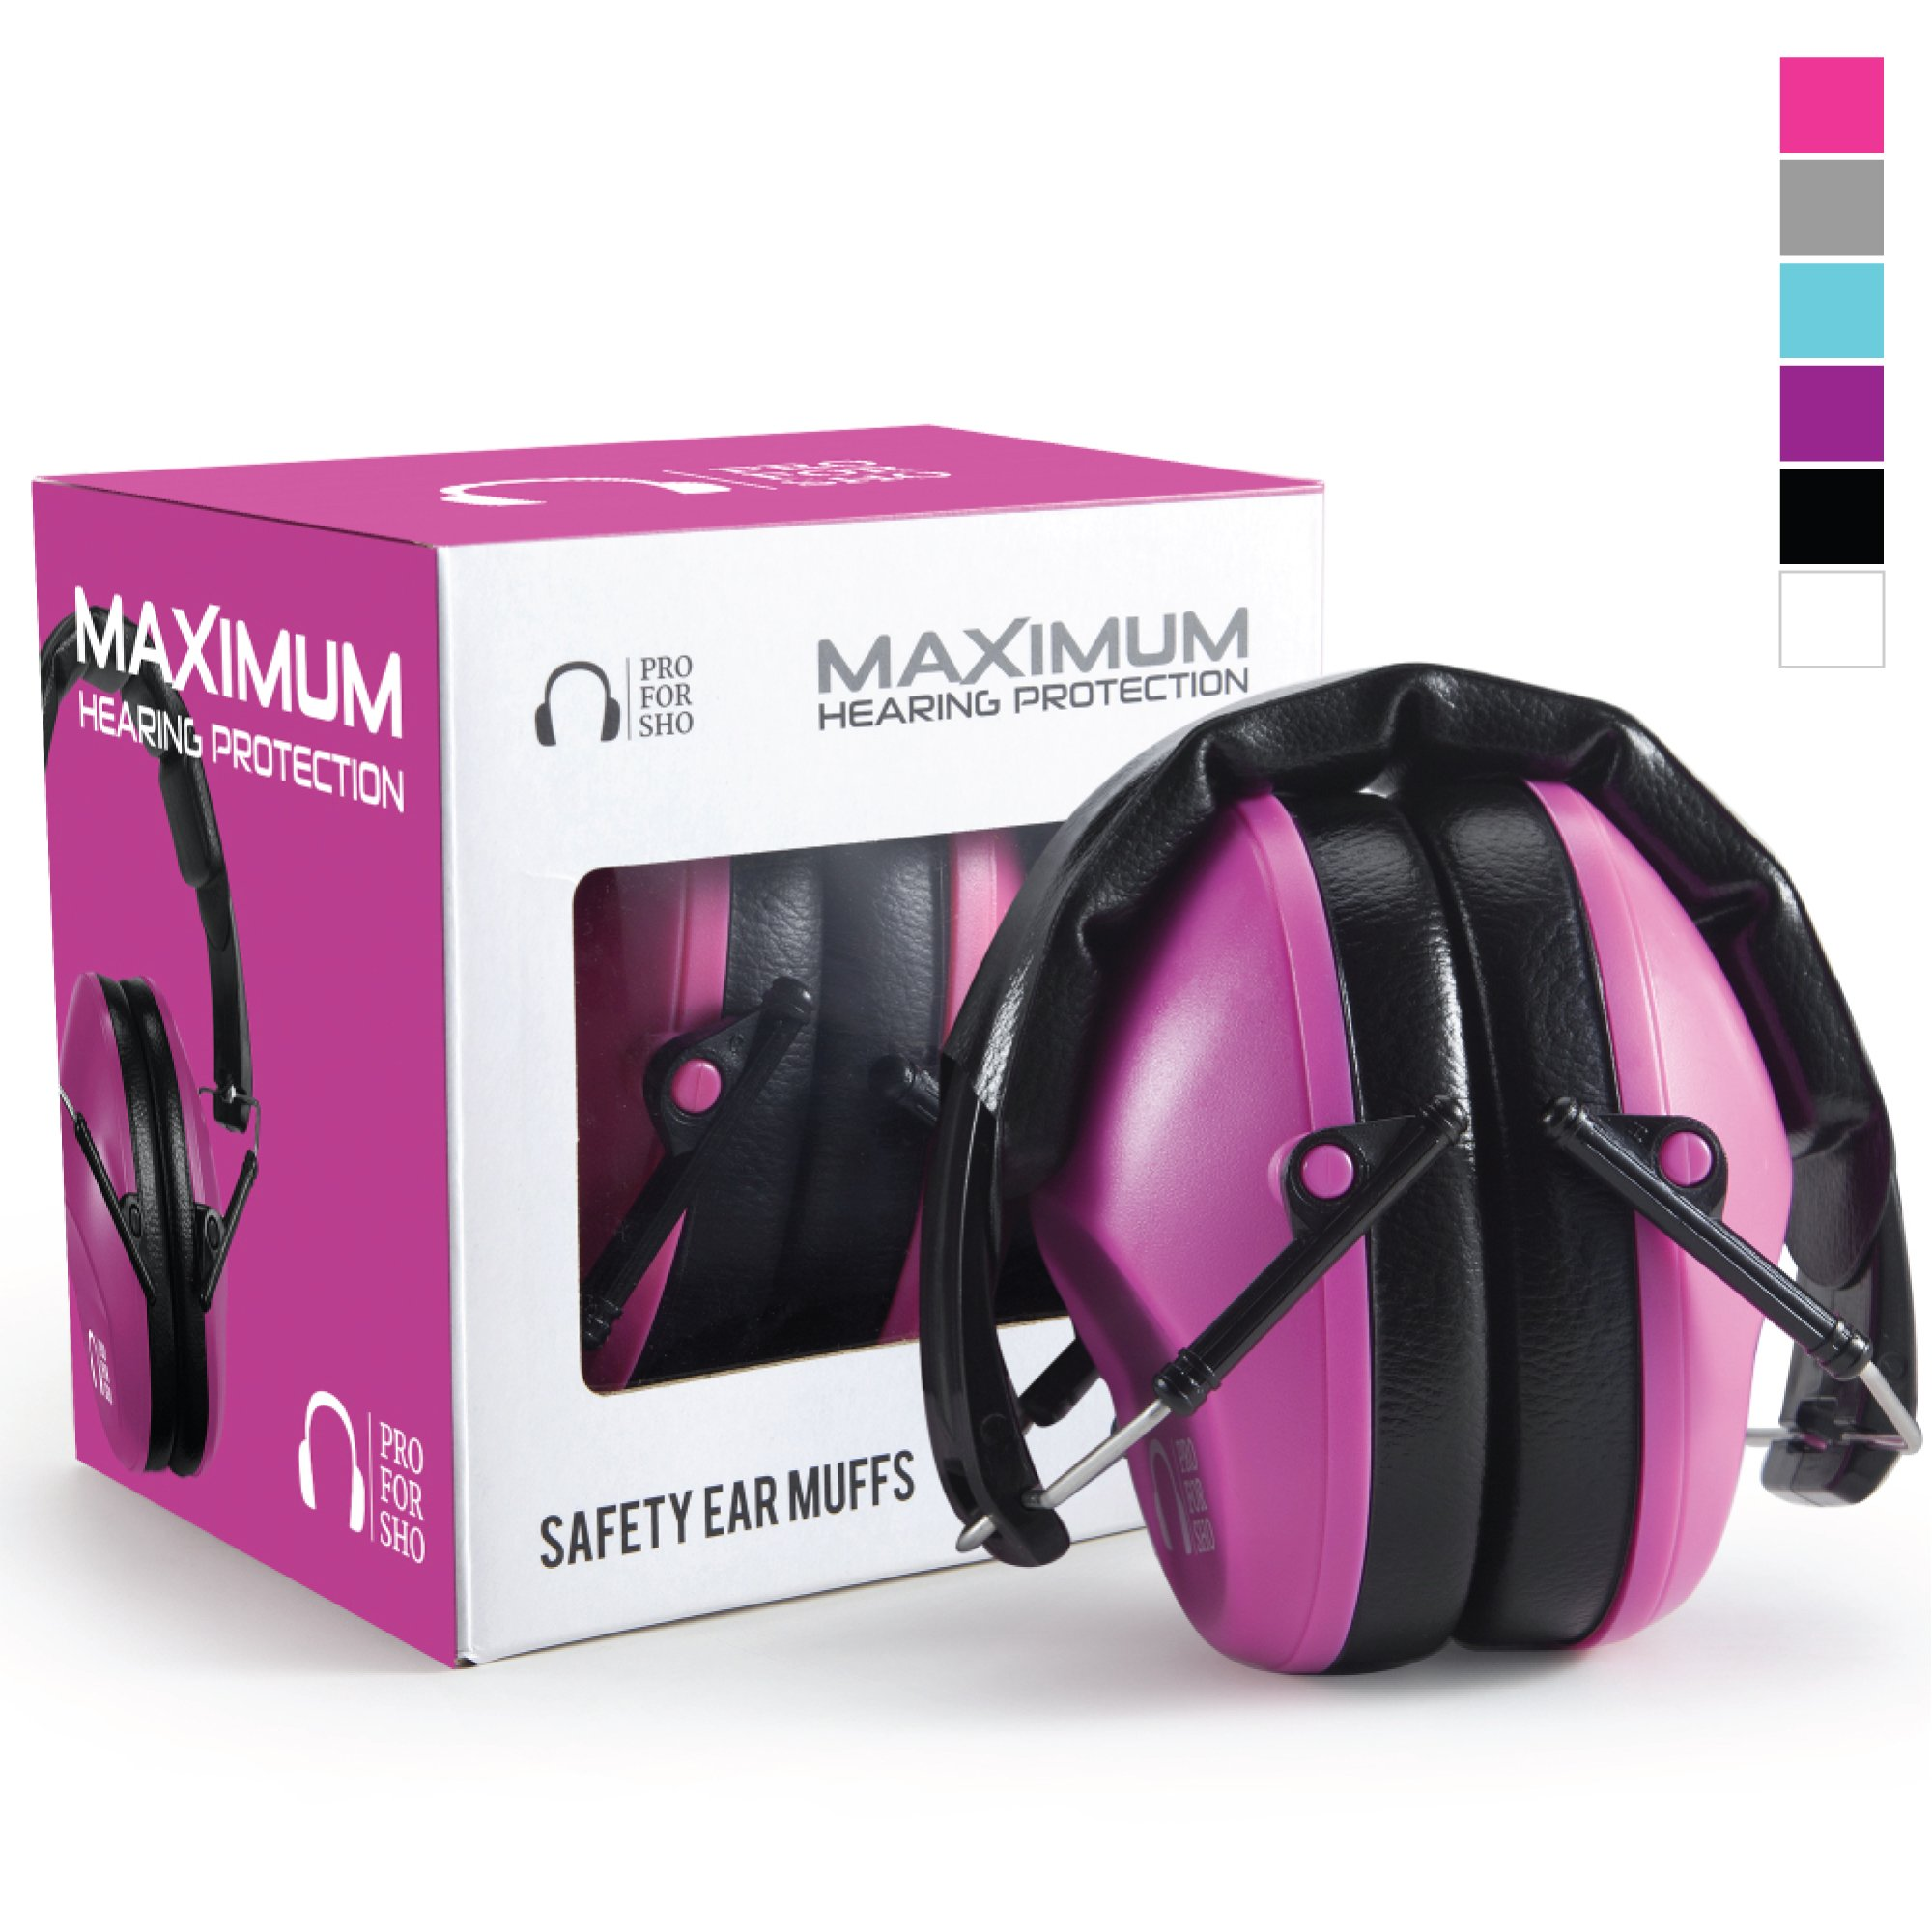 Pro For Sho 34dB Shooting Ear Protection - Special Designed Ear Muffs Lighter Weight & Maximum Hearing Protection - Standard Size, Pink by Pro For Sho